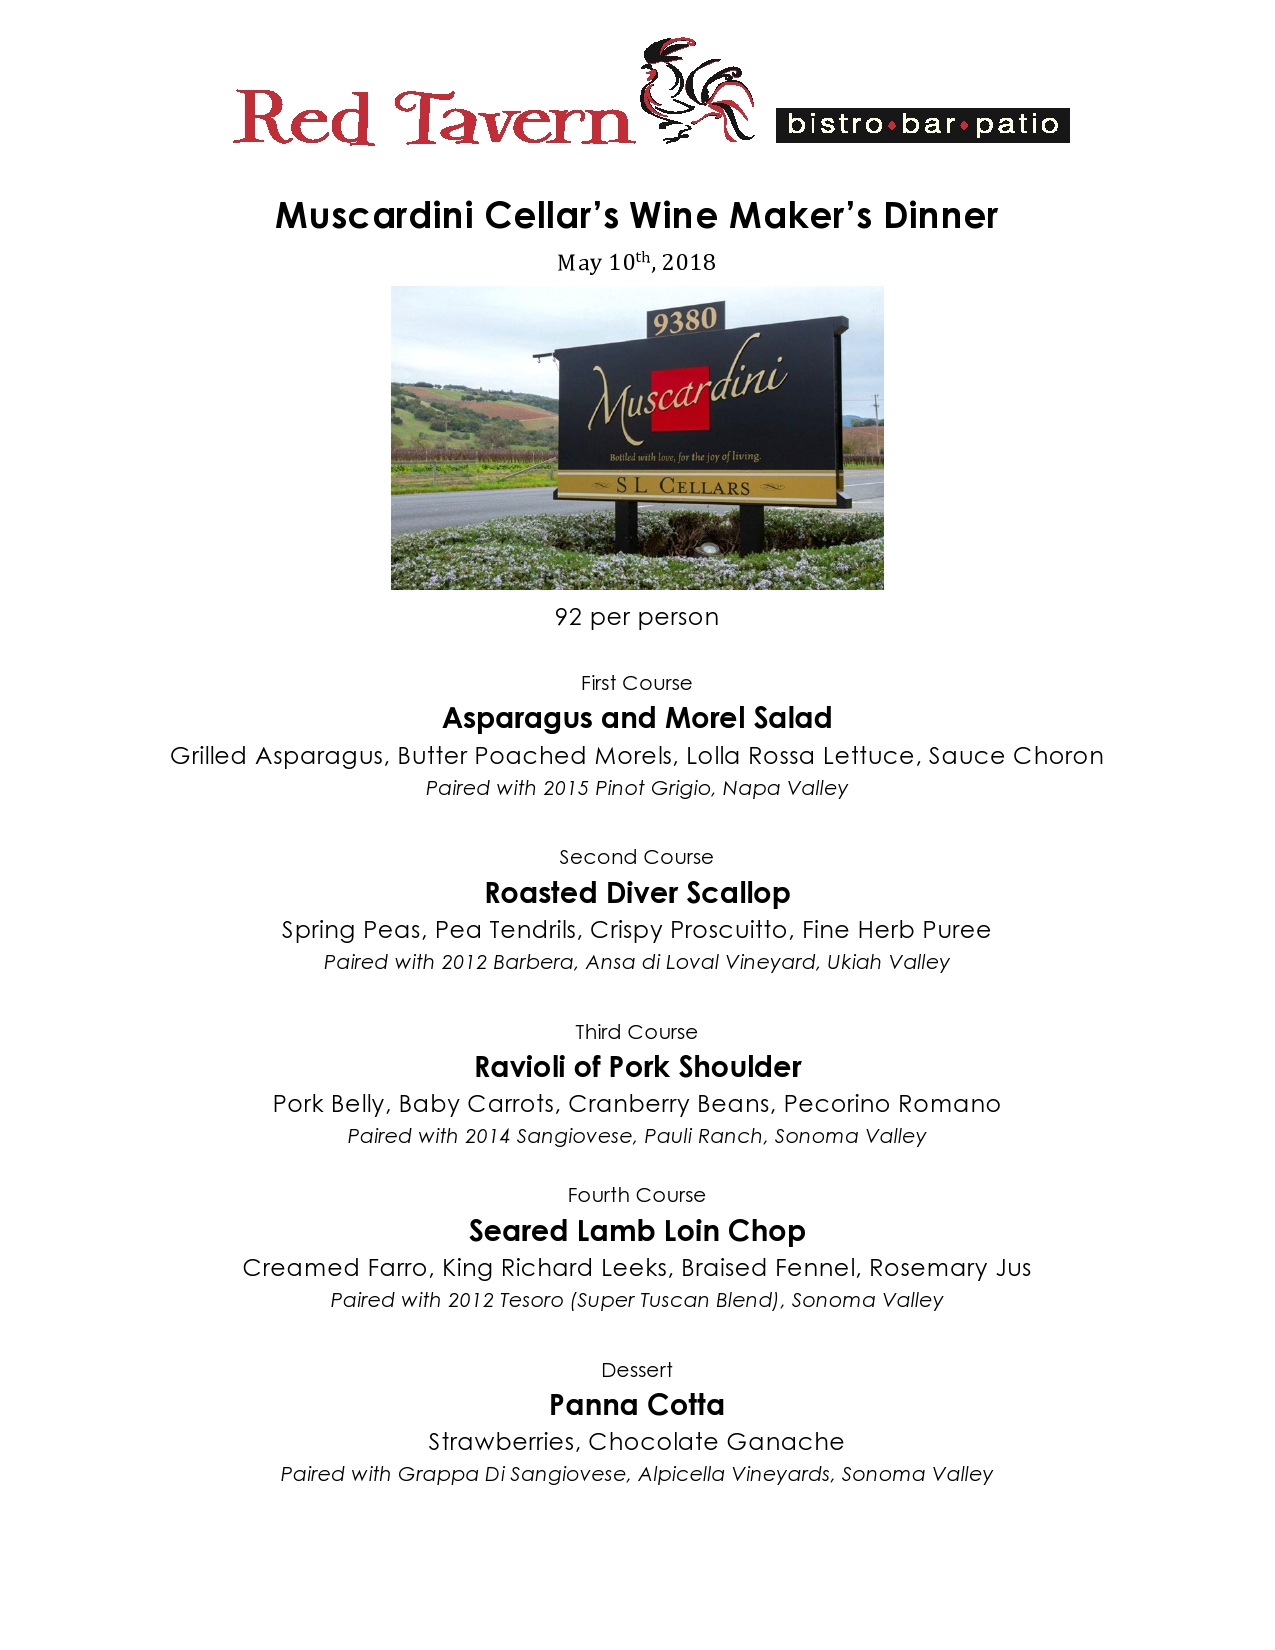 Red Tavern upcoming event: Muscardini Wine Maker's Dinner – May 10th